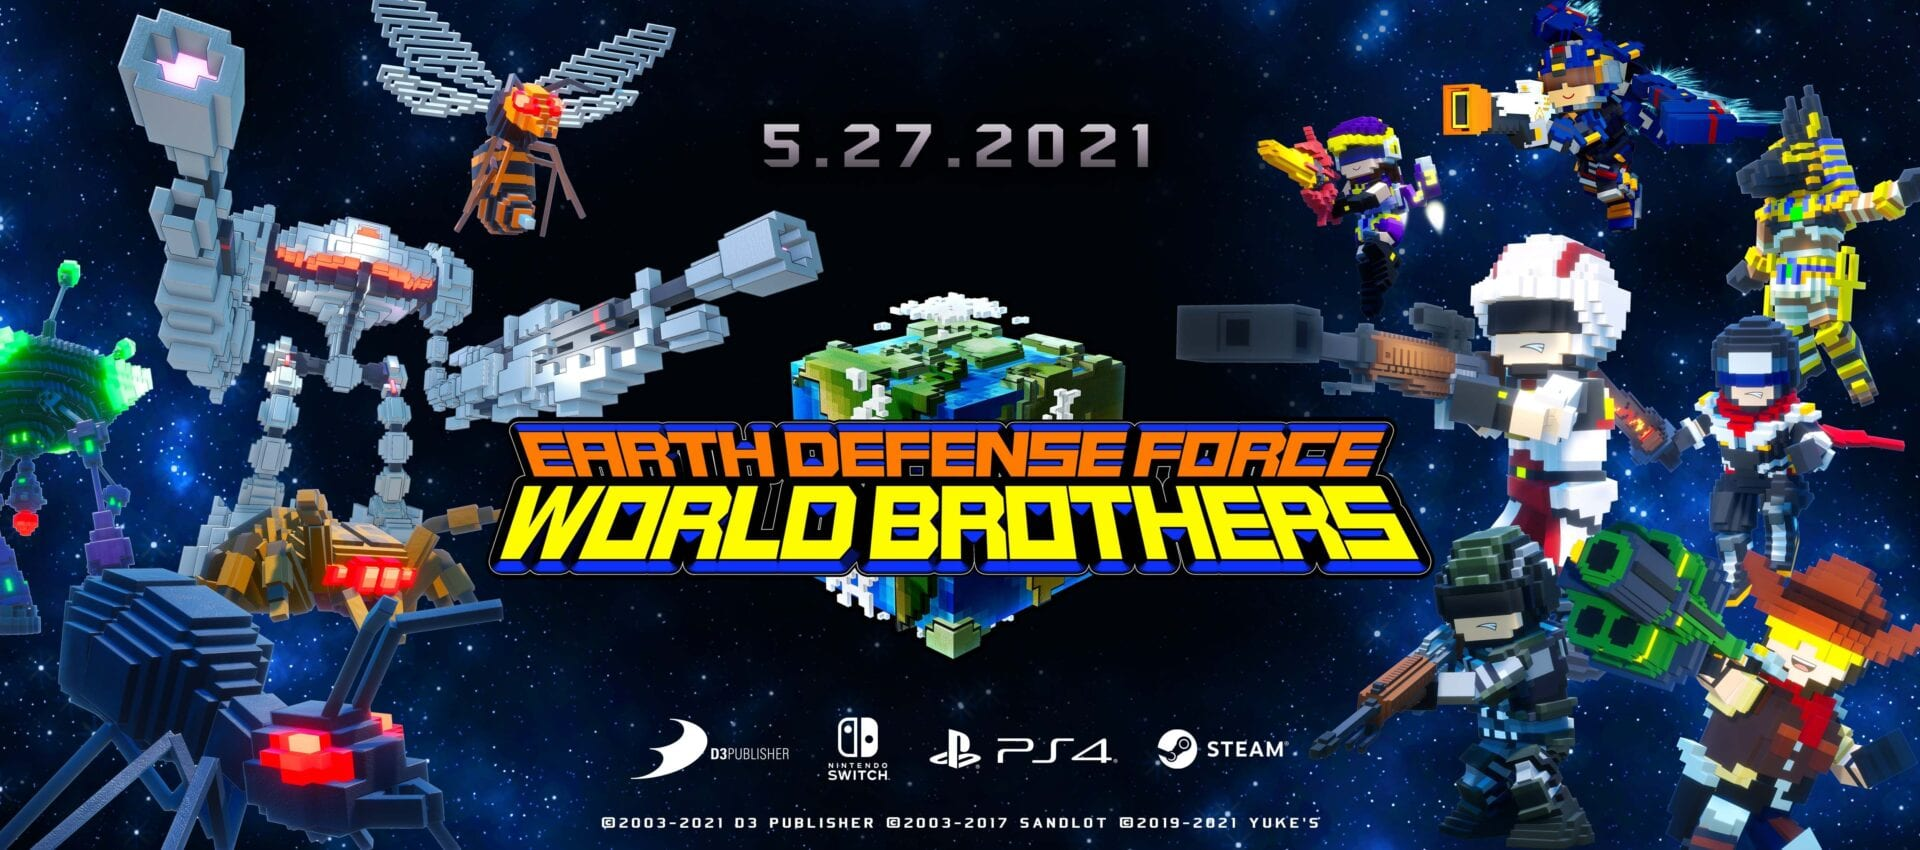 EARTH DEFENSE FORCE:WORLD BROTHERS